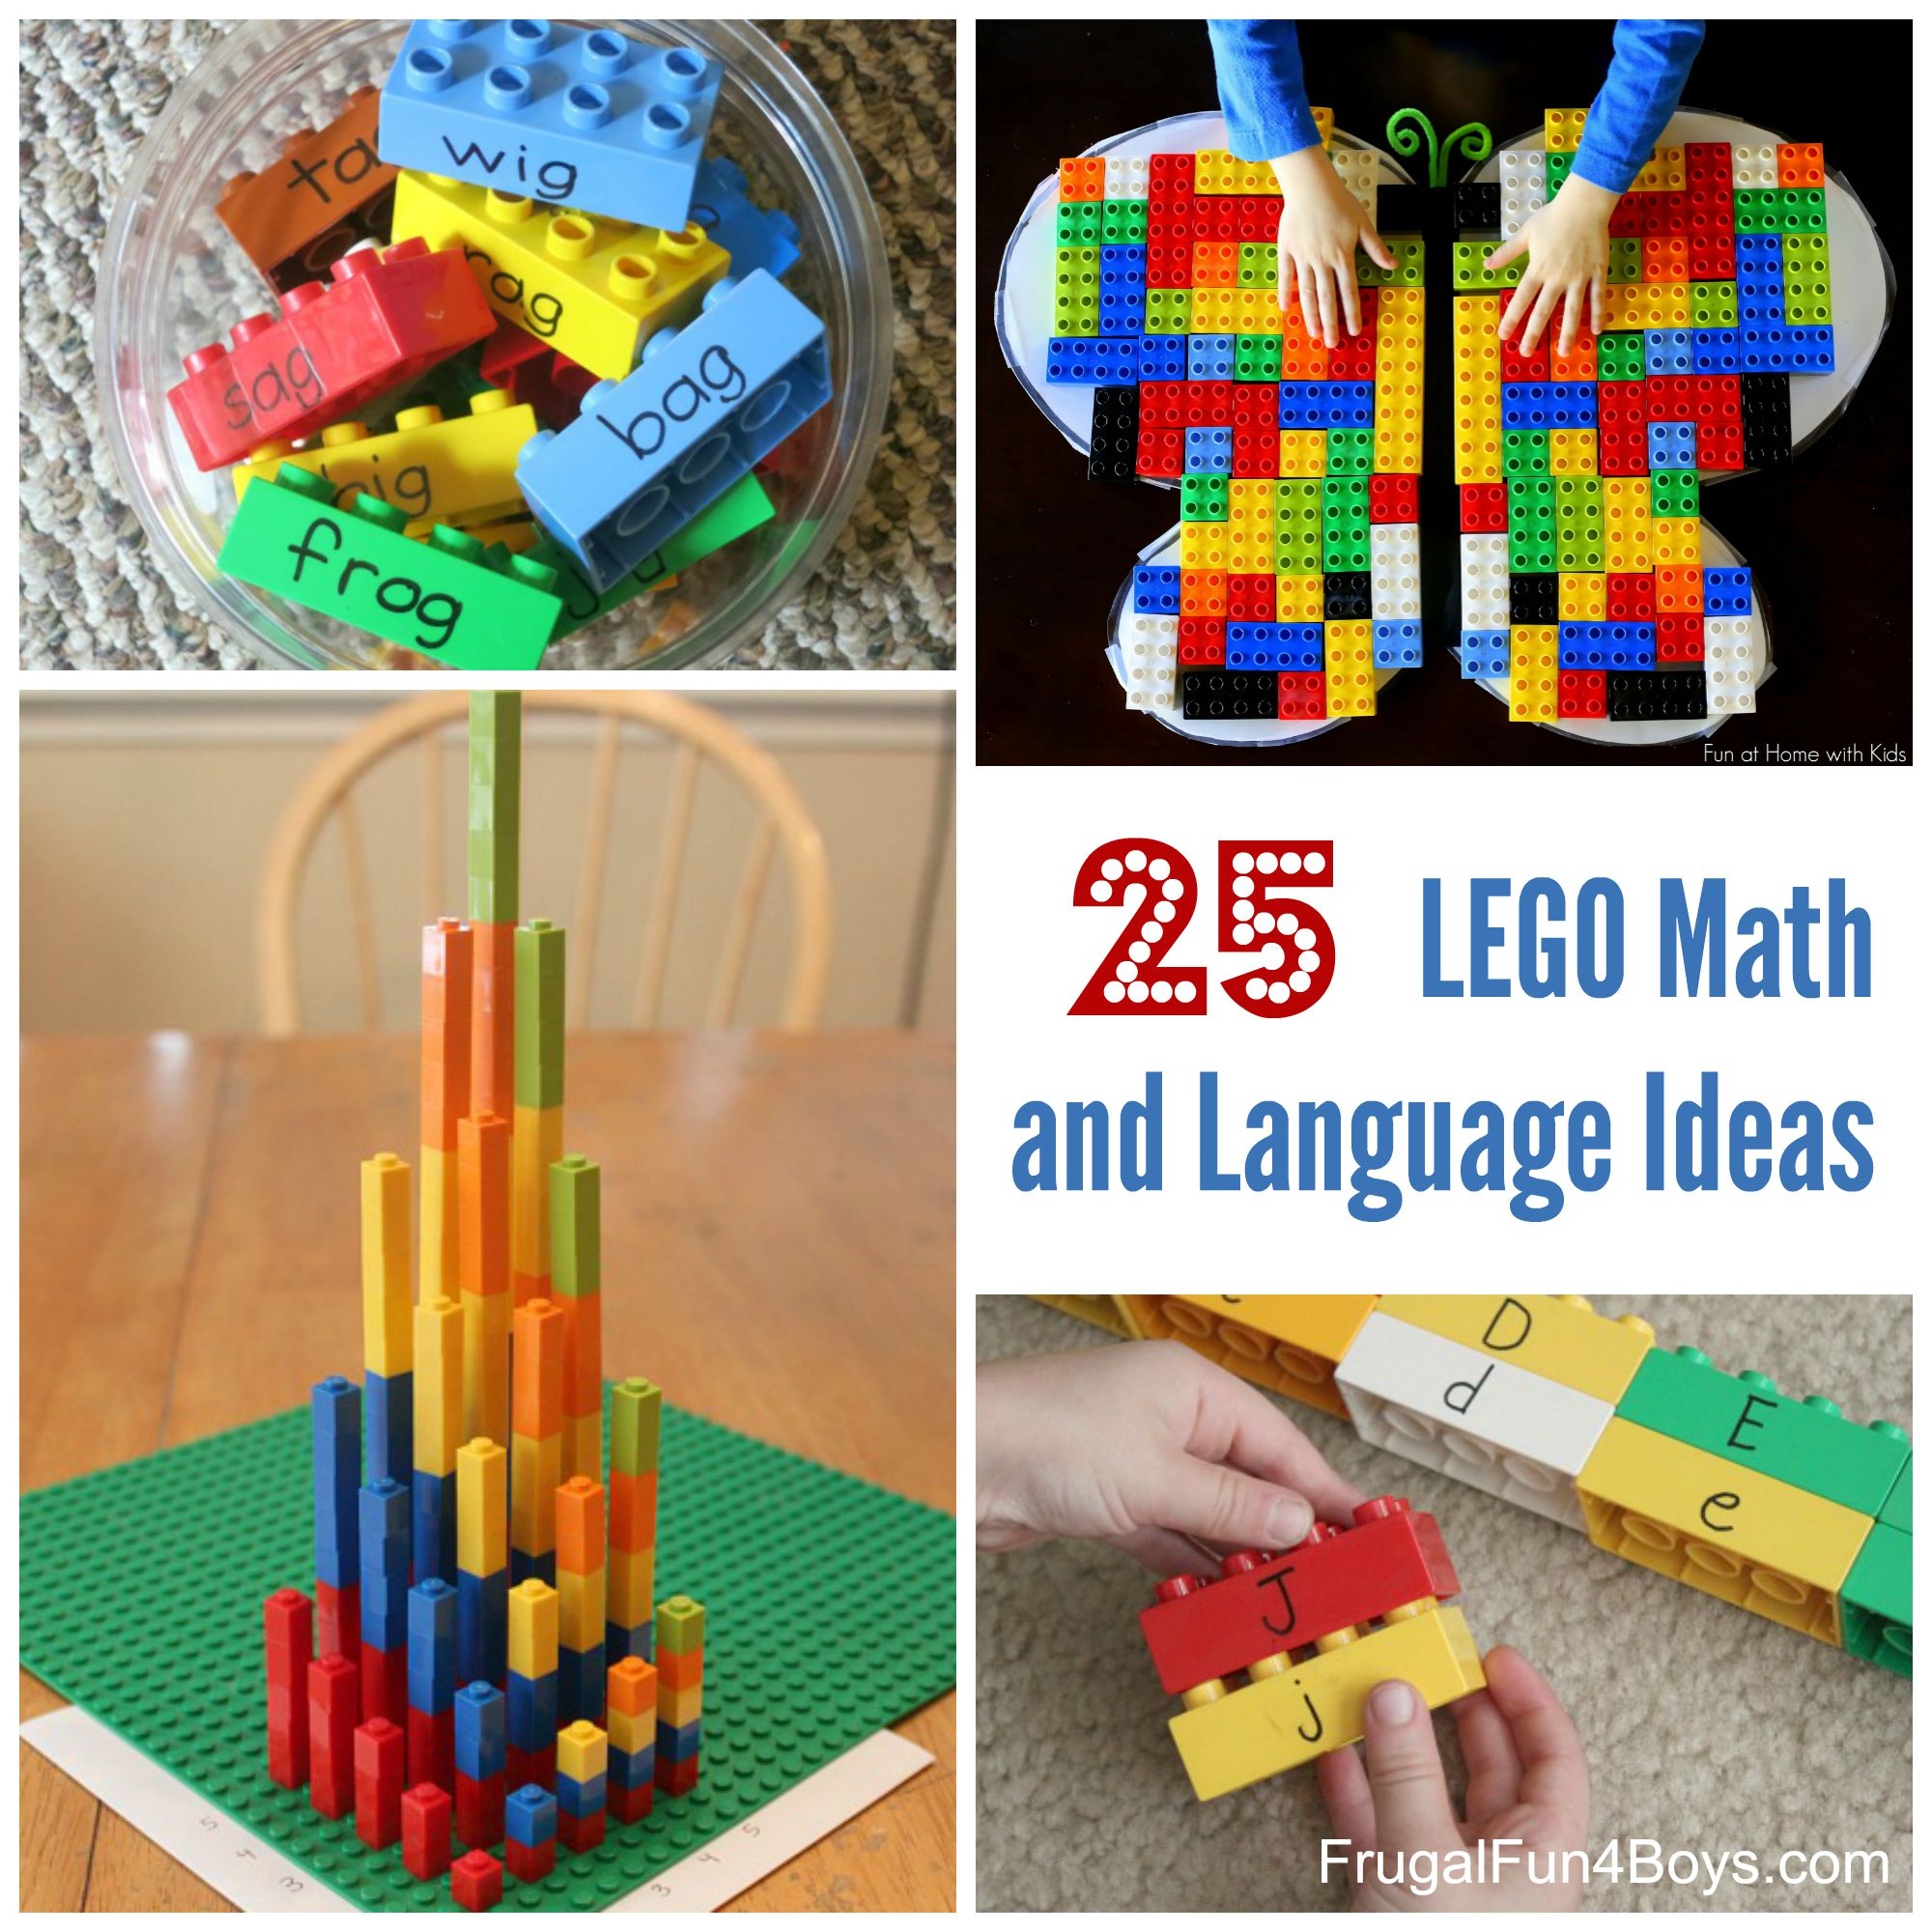 Lego Learning 25 Math And Language Ideas For Preschool Through Third Grade